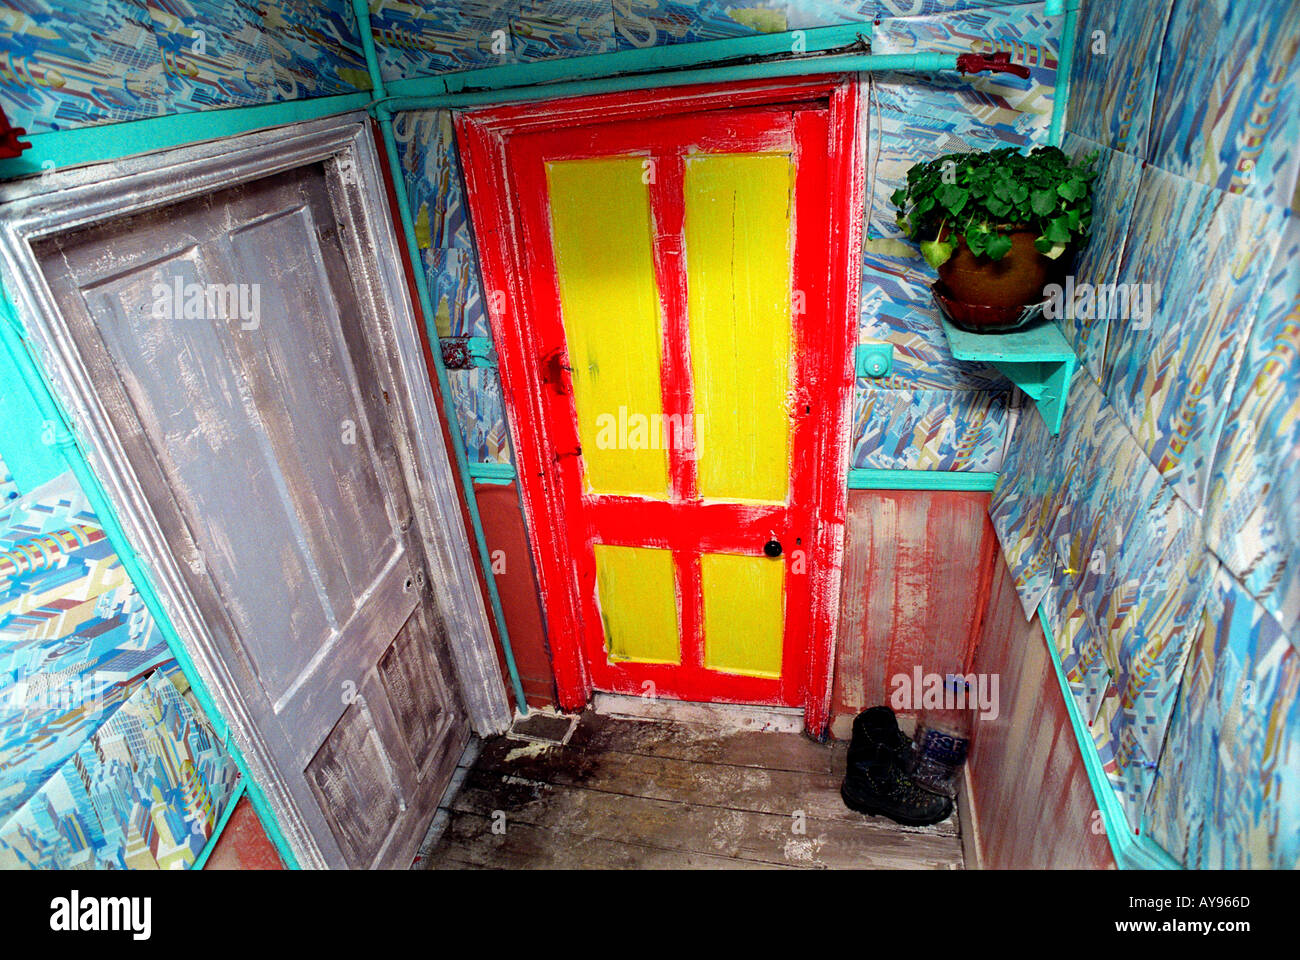 Stairwell at Agnes Place Squat in Kennington South London. Stock Photo